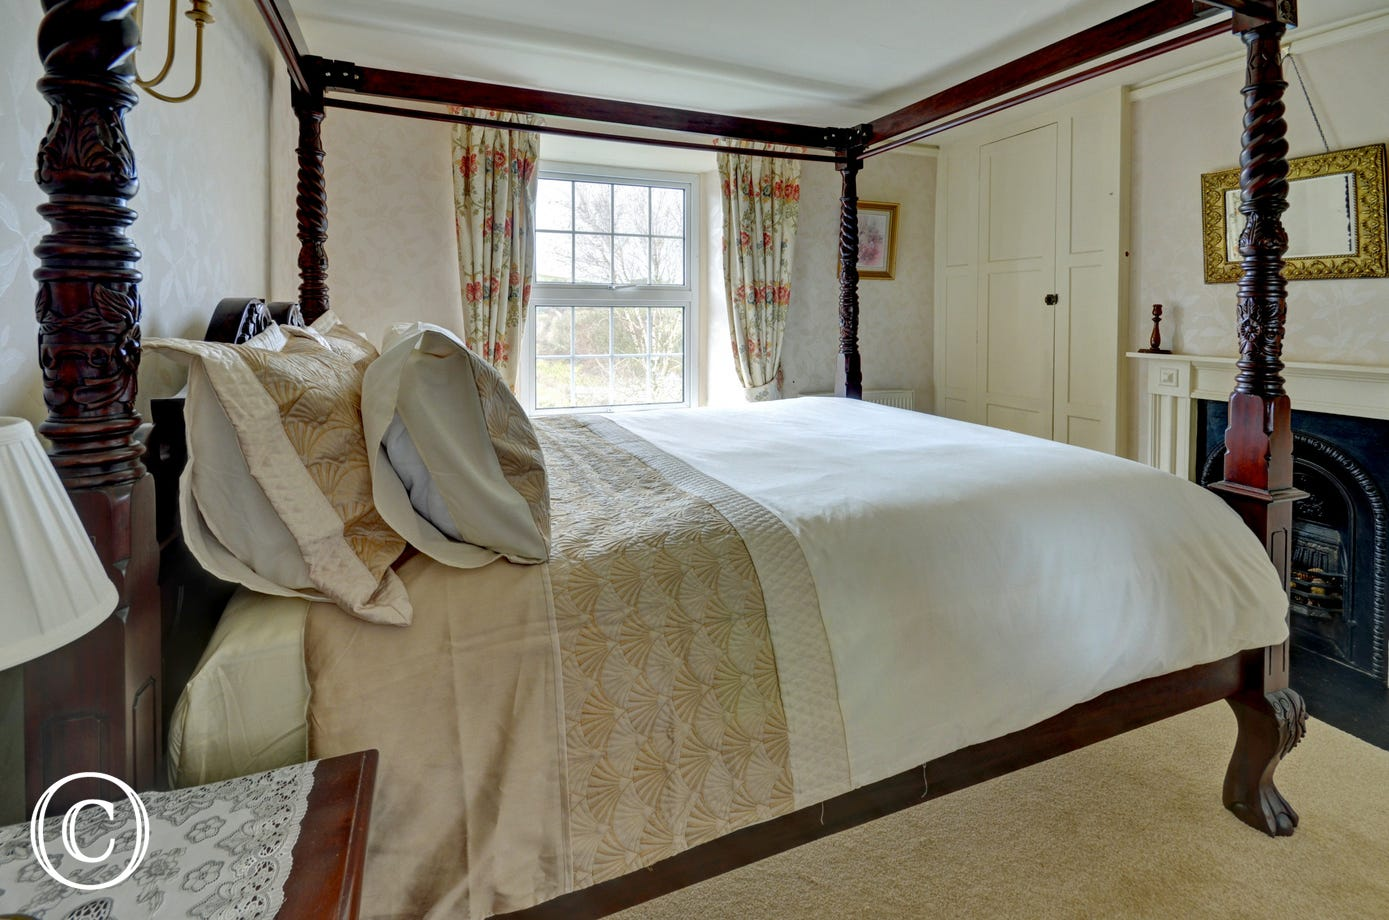 Wooden four poster bed in the master bedroom